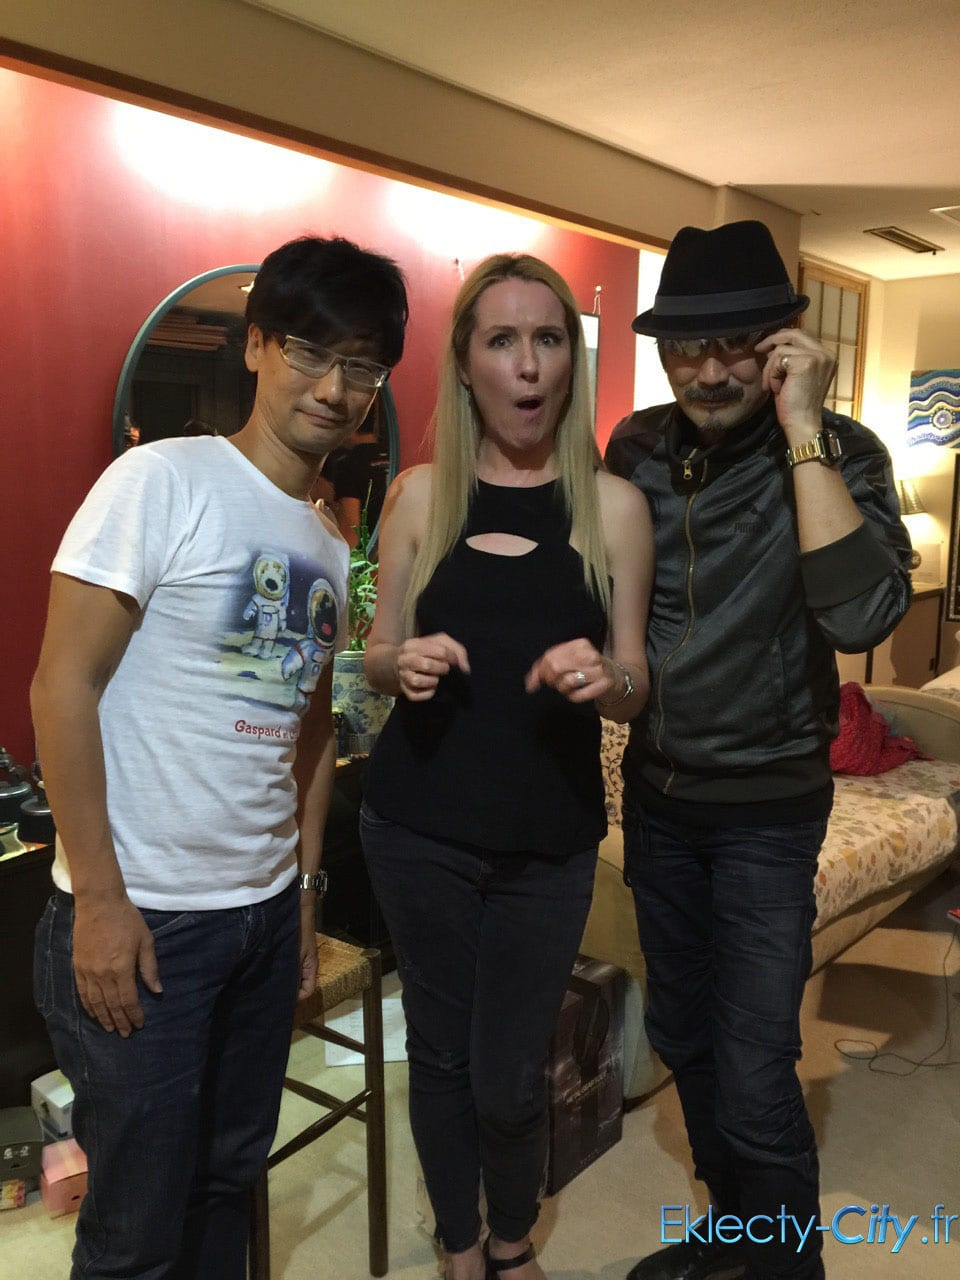 Hideo-Donna-Burke-and-Otsuka-at-Dagmusic-Sept-2-for-worldwide-release-party